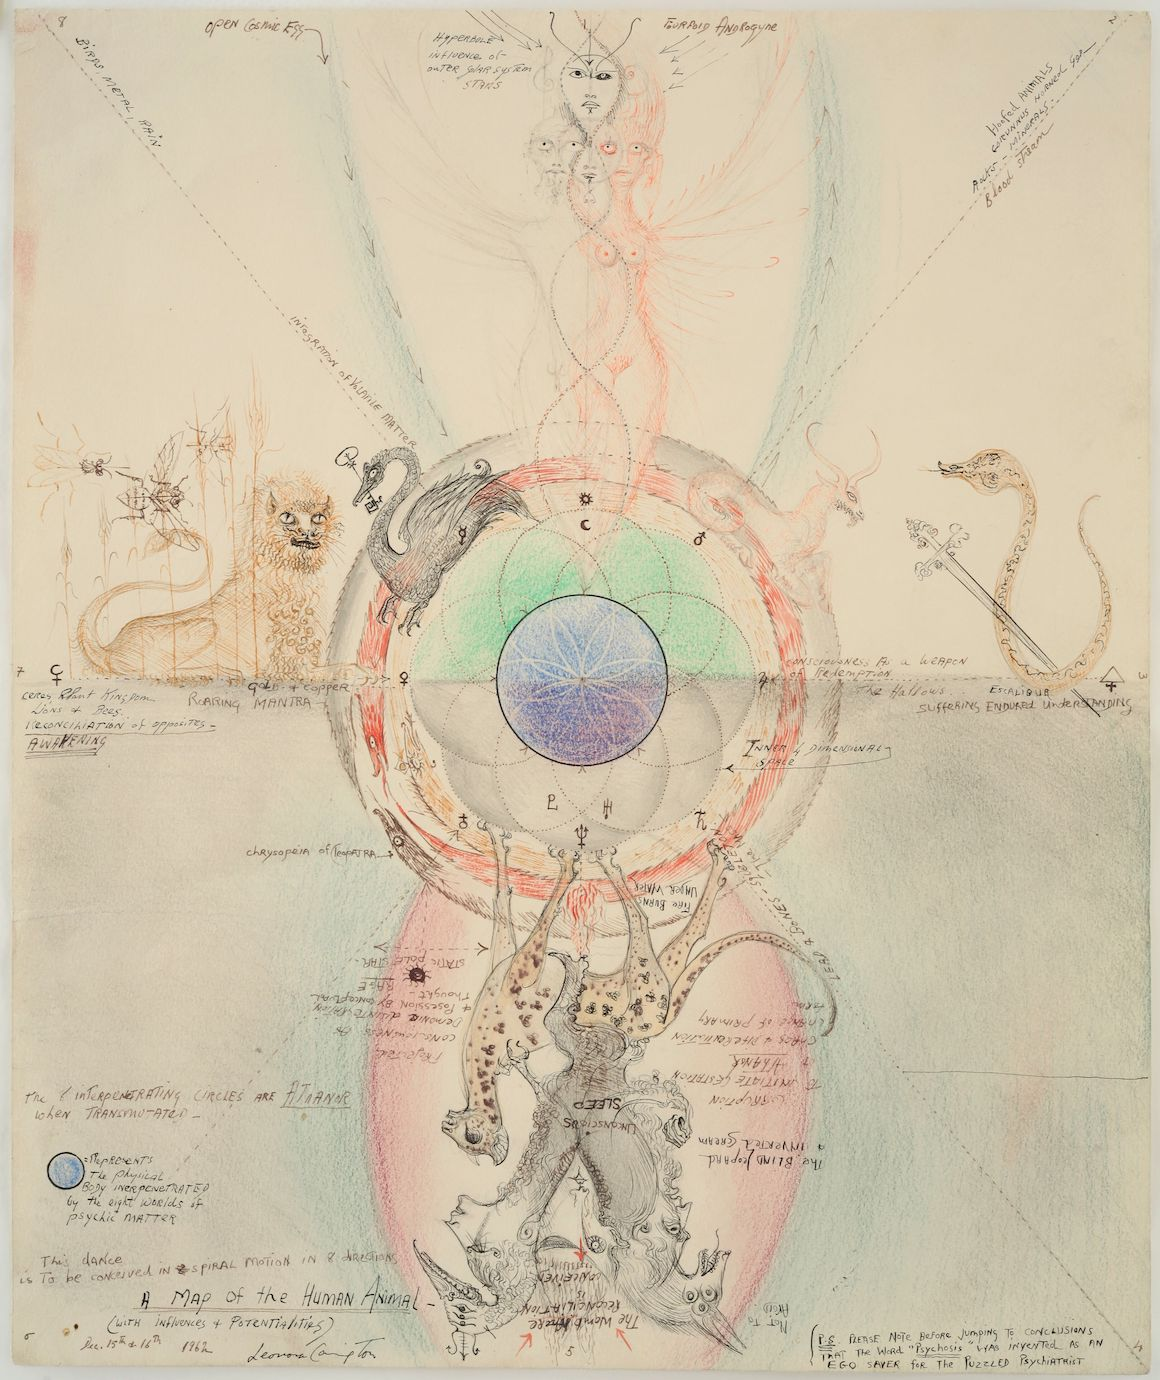 LEONORA CARRINGTON, MAP OF THE HUMAN ANIMAL, 1962. COURTESY GALLERY WENDI NORRIS © 2019 ESTATE OF LEONORA CARRINGTON / ARTISTS RIGHTS SOCIETY (ARS), NEW YORK.